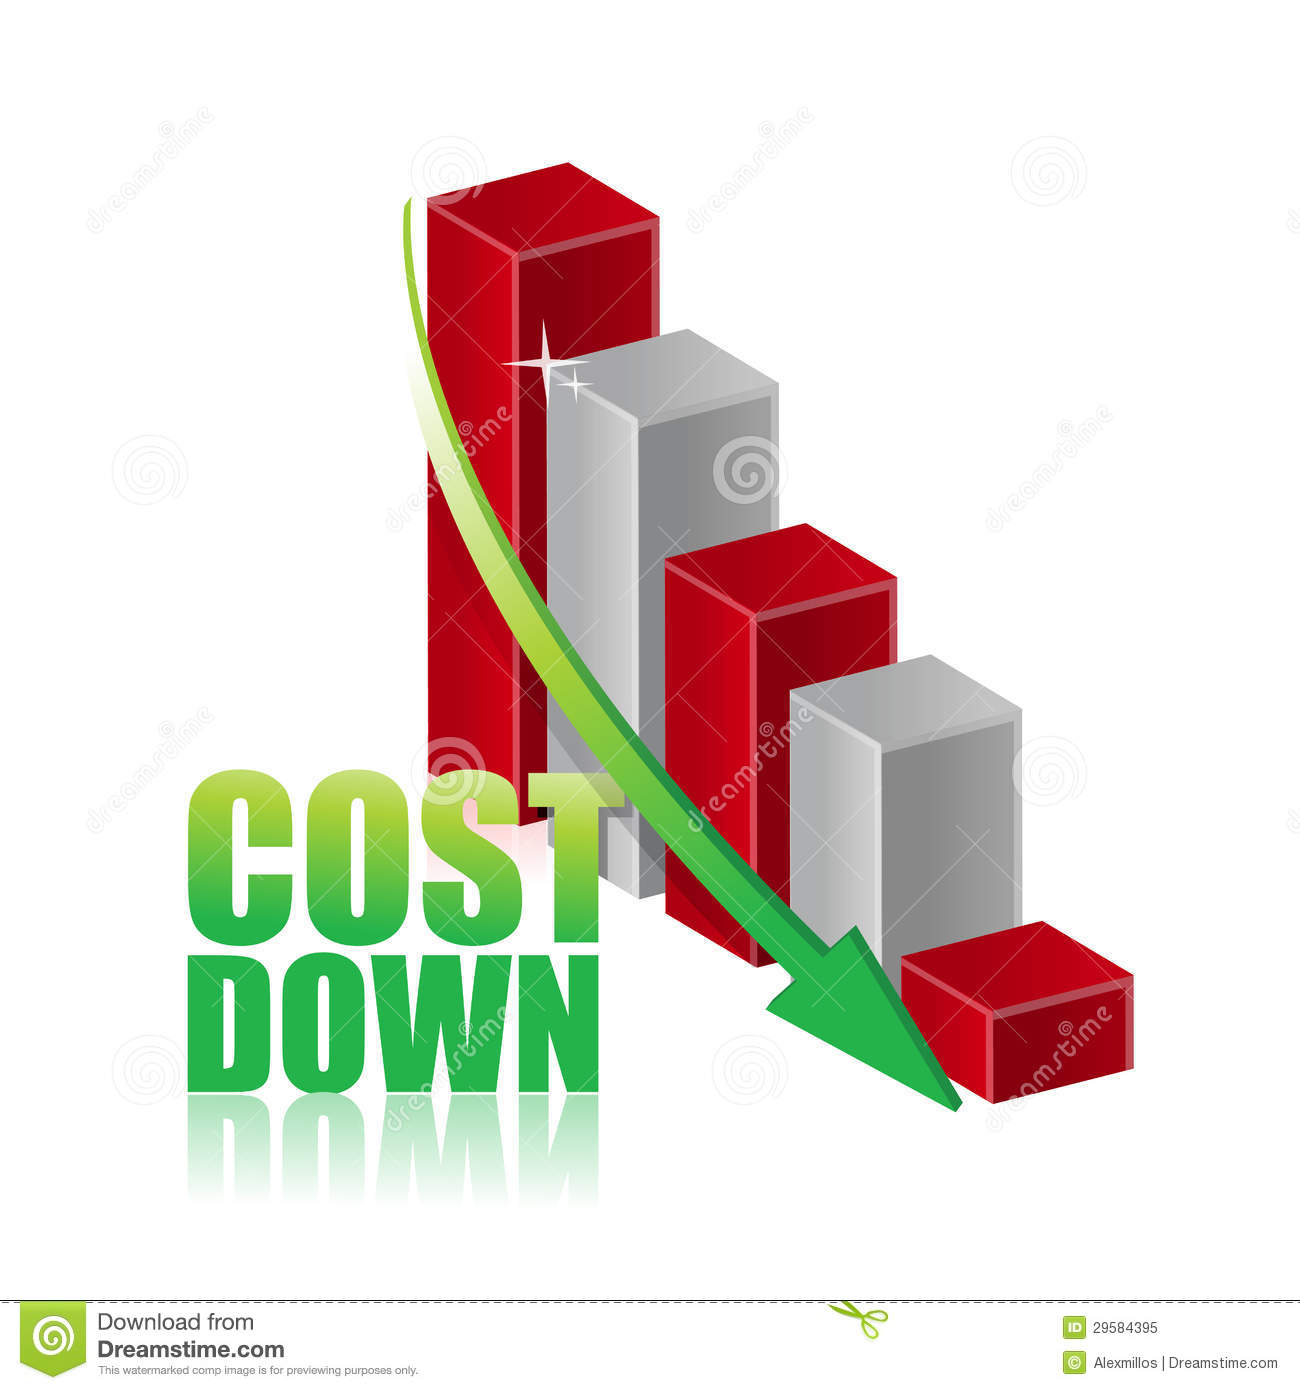 Cost Down Business Chart Graph Royalty Free Stock Photo - Image ...: https://www.dreamstime.com/royalty-free-stock-photo-cost-down...